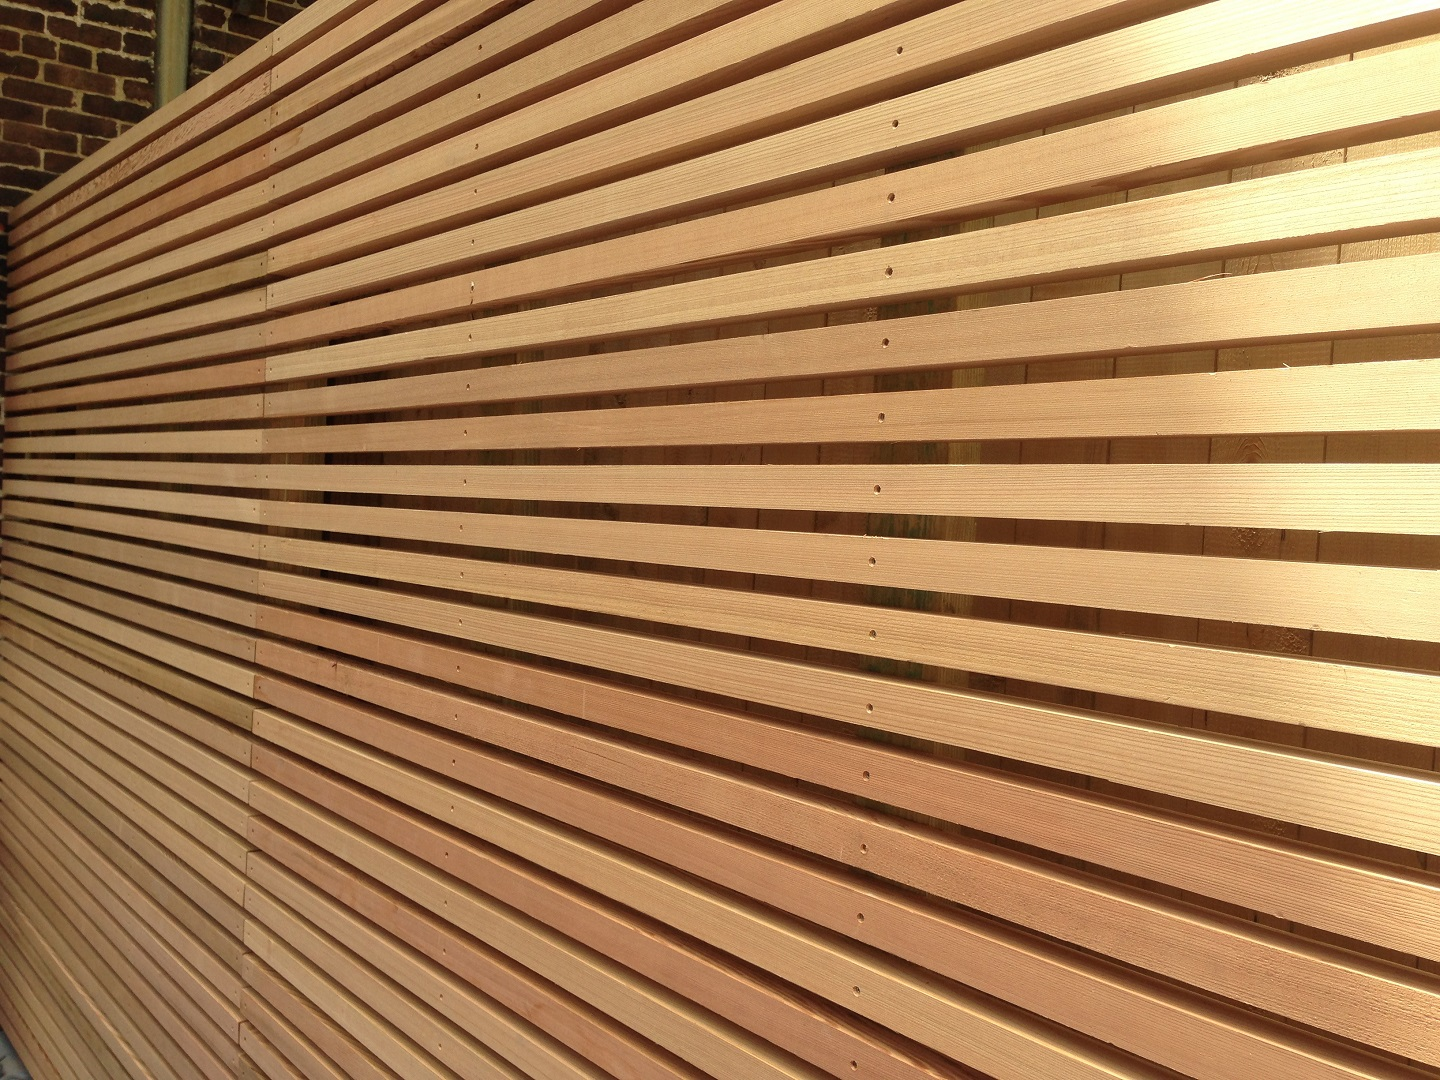 Wood fencing by landcsapers near me in Cambridge, MA